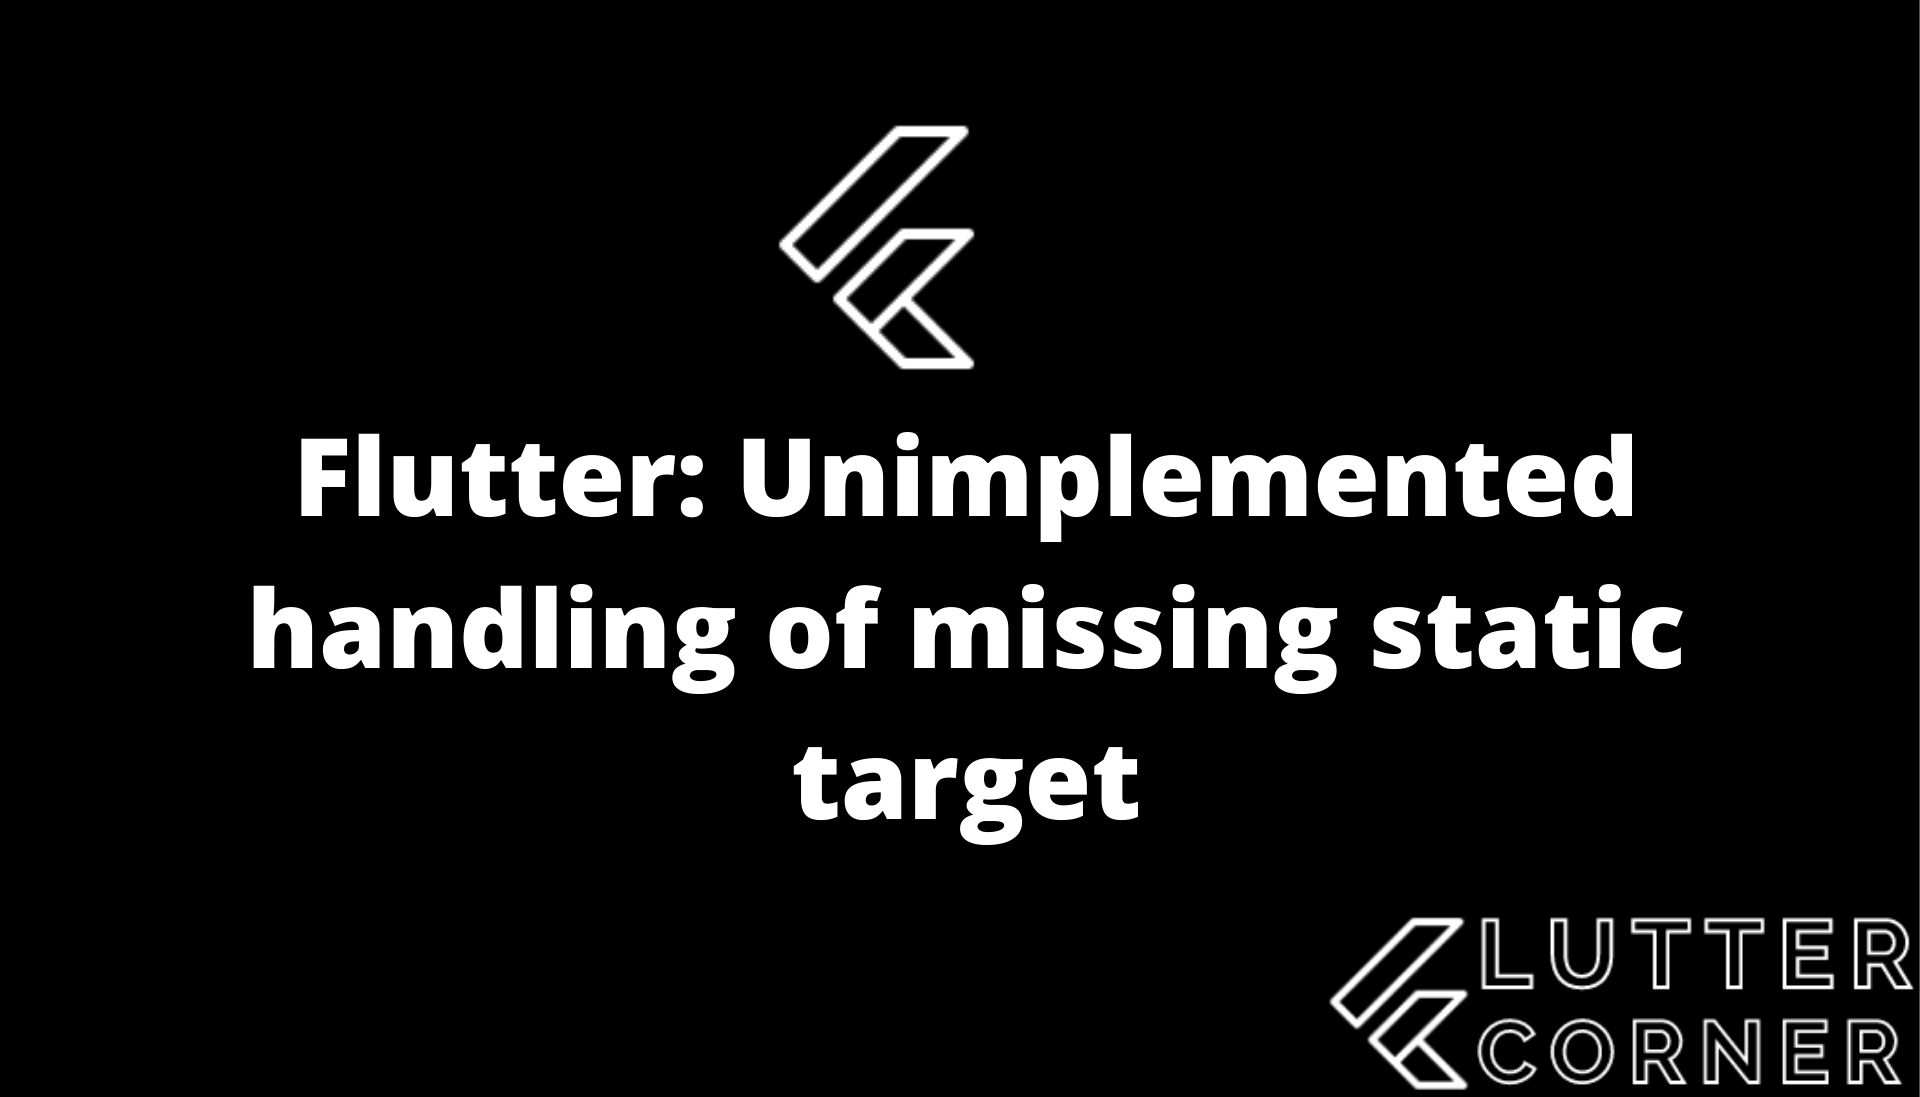 Unimplemented handling of missing static target, unimplemented handling of missing static, handling of missing static target, unimplemented handling of missing, unimplemented handling of missing static in flutter